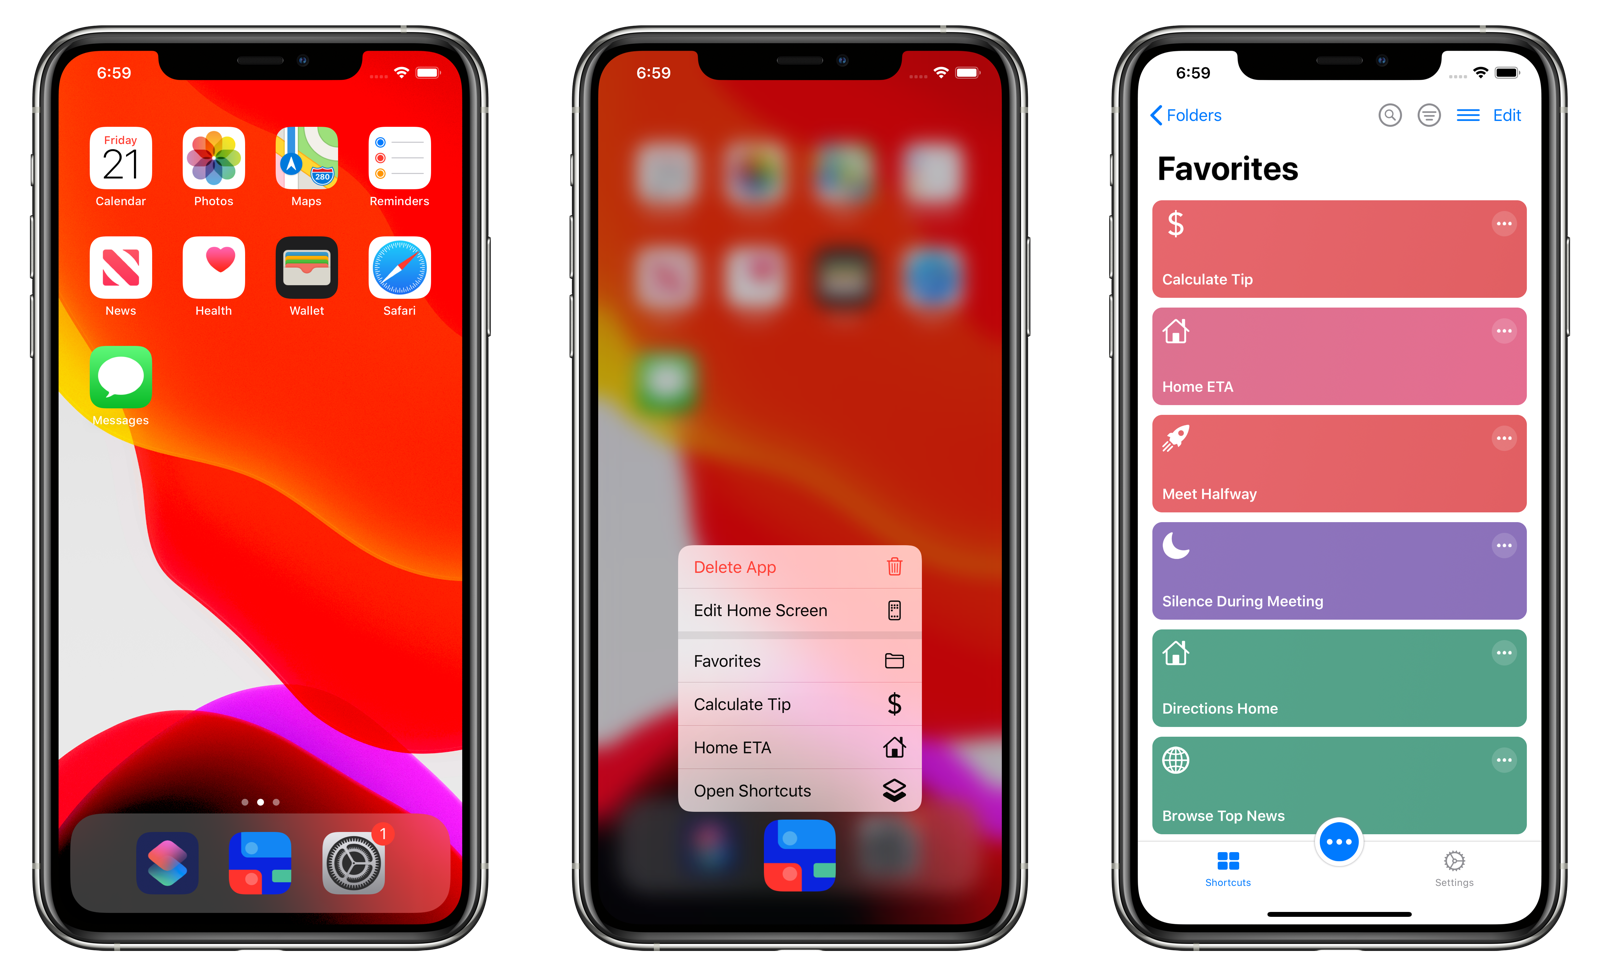 Running a Quick Action from the iOS Home screen.